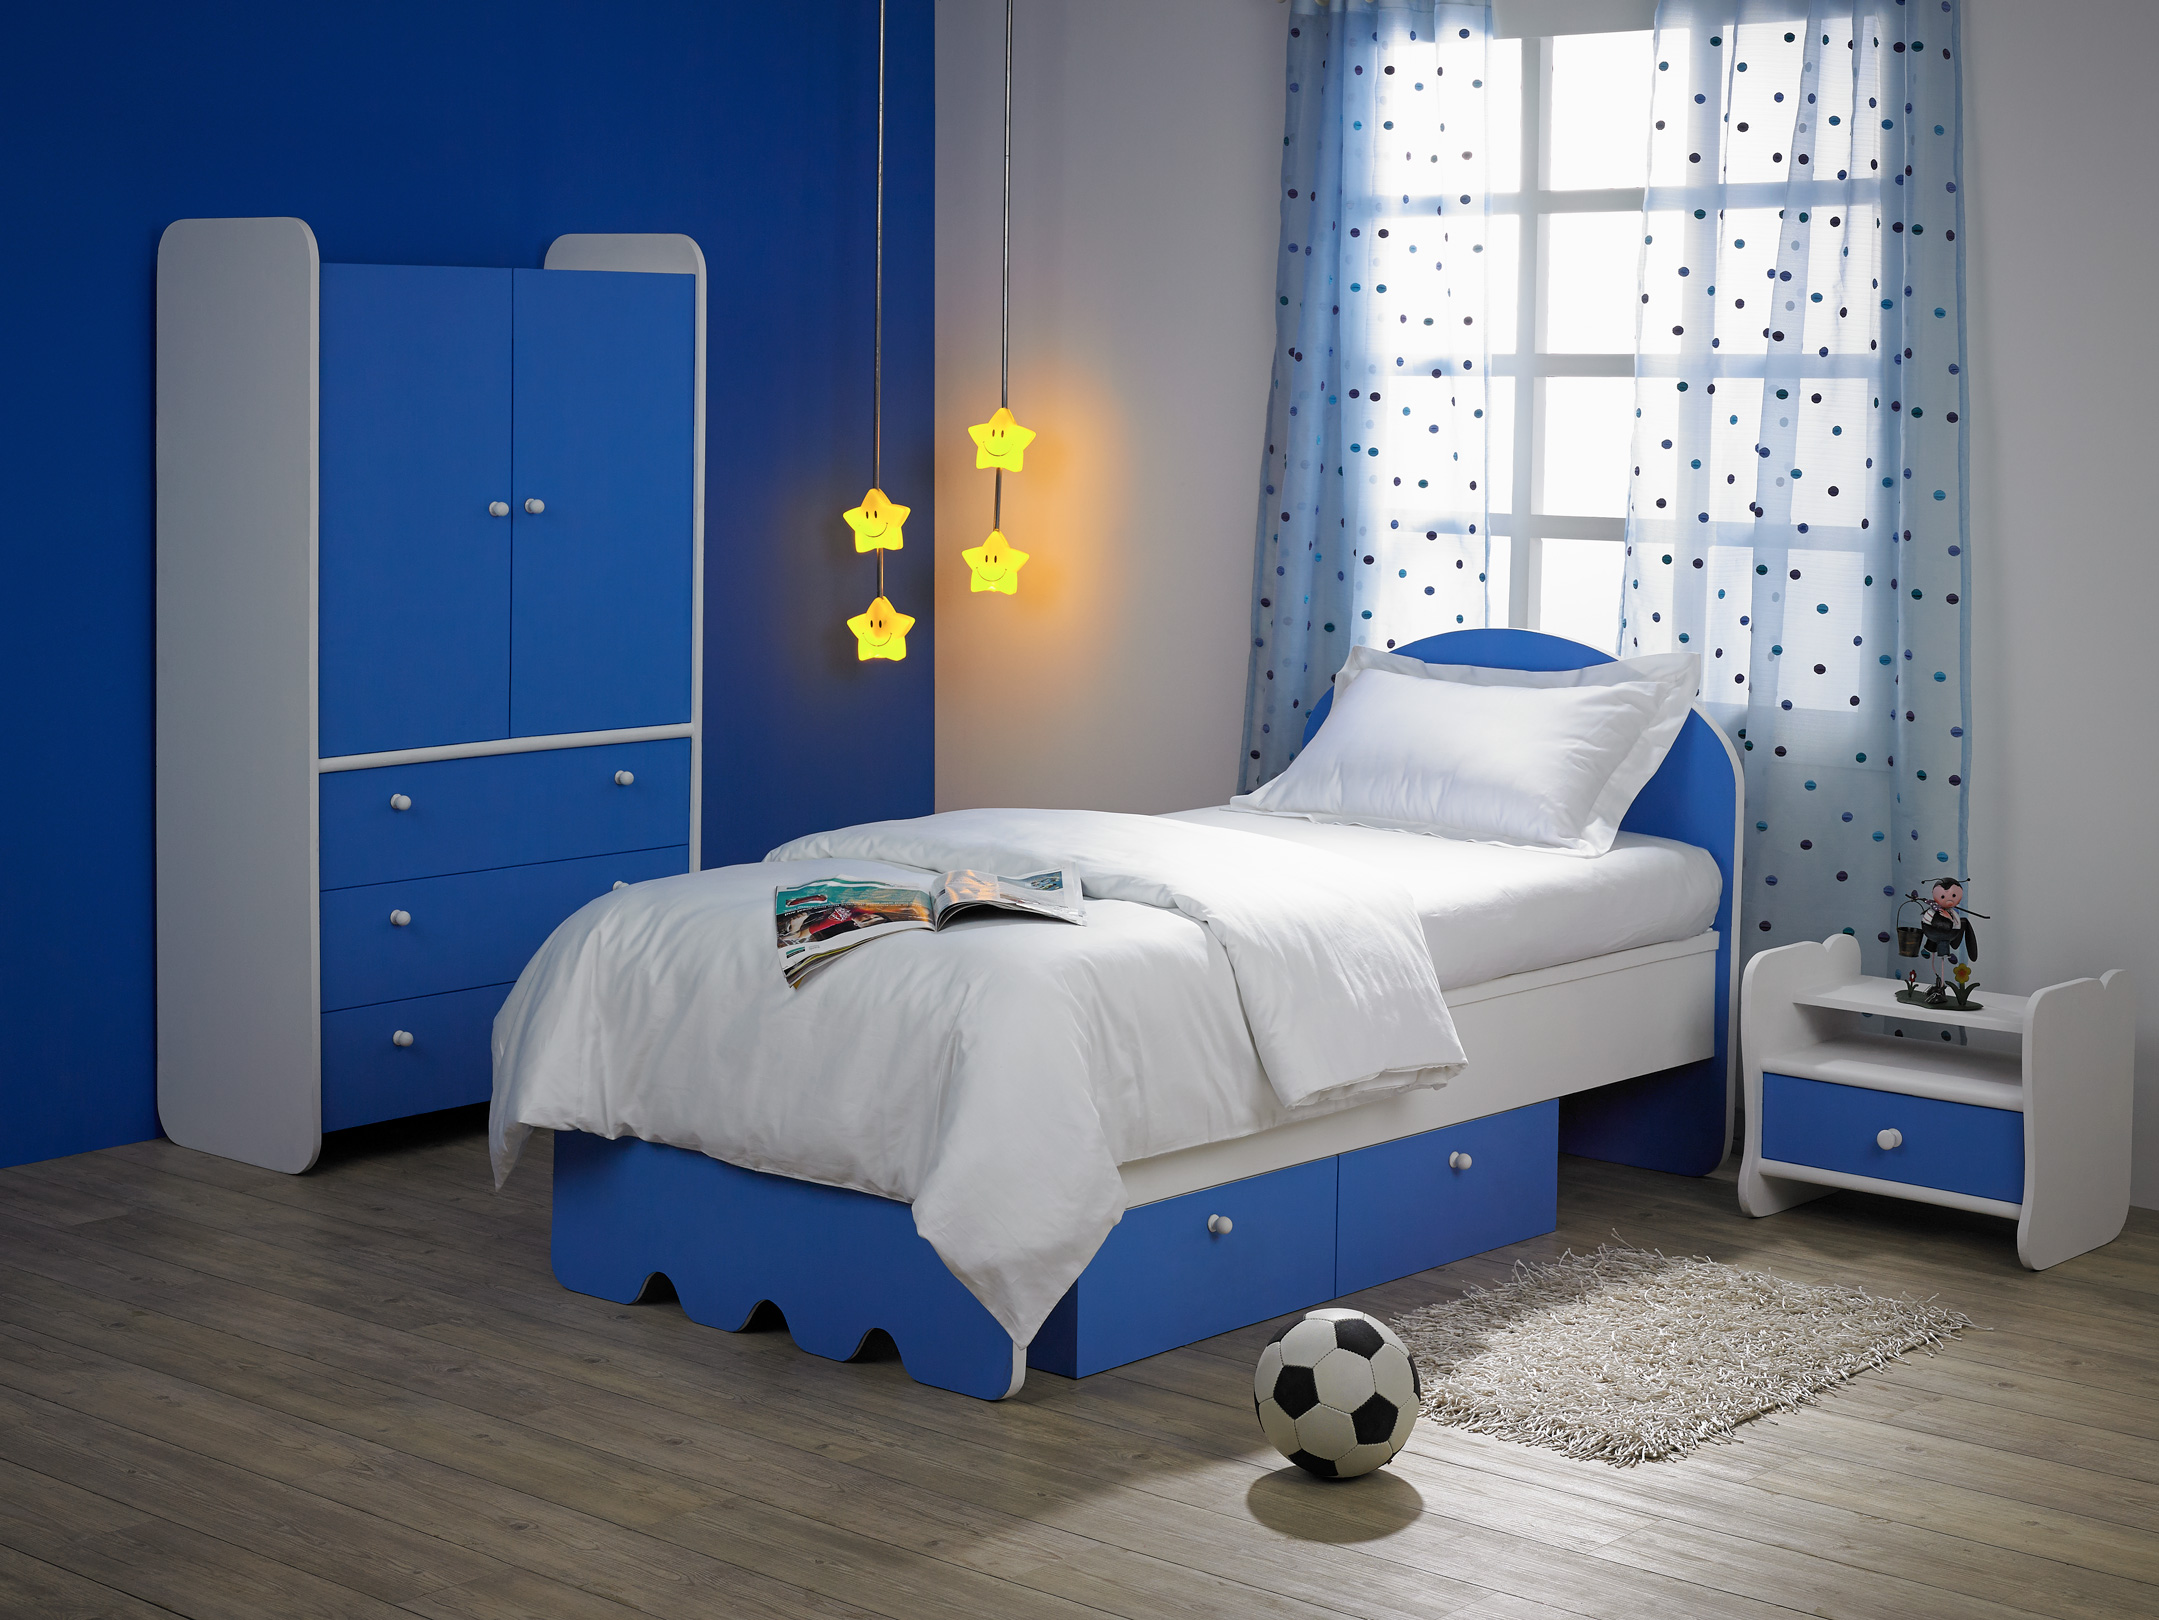 bombay dyeing bedroom themes 2013